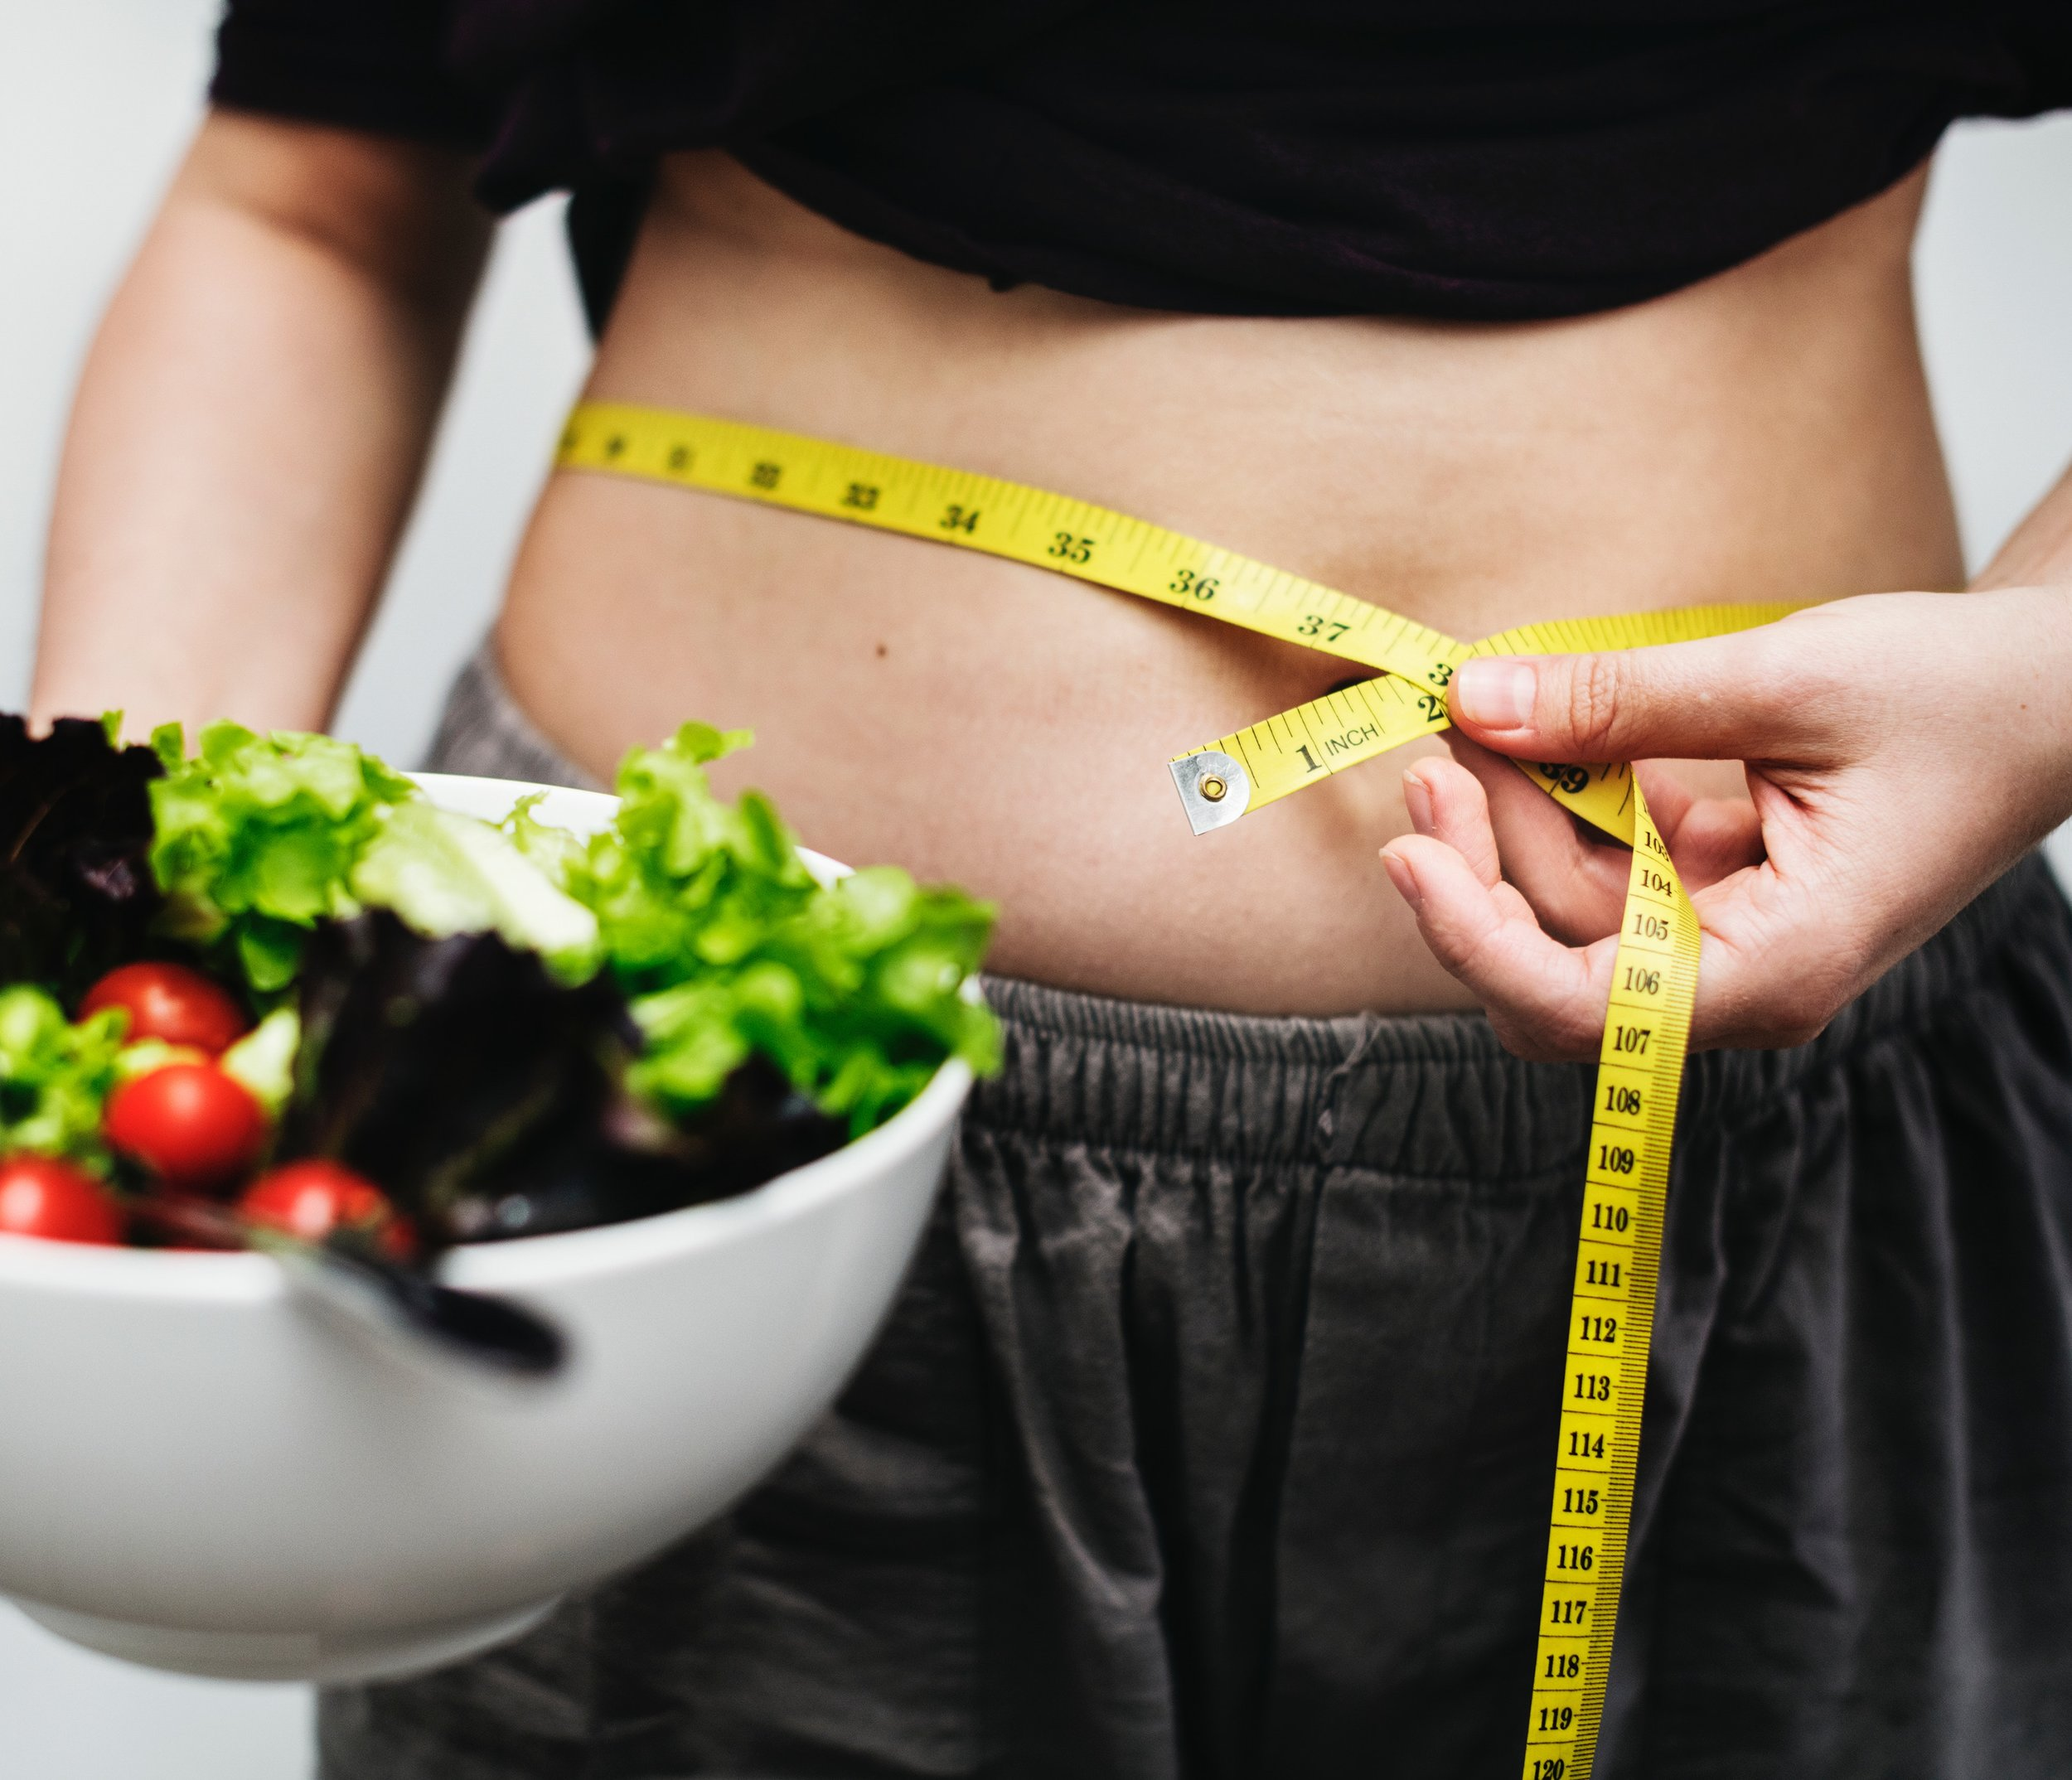 Determines the efficiency of your metabolism, and hence whether you are overweight or at a healthy weight.